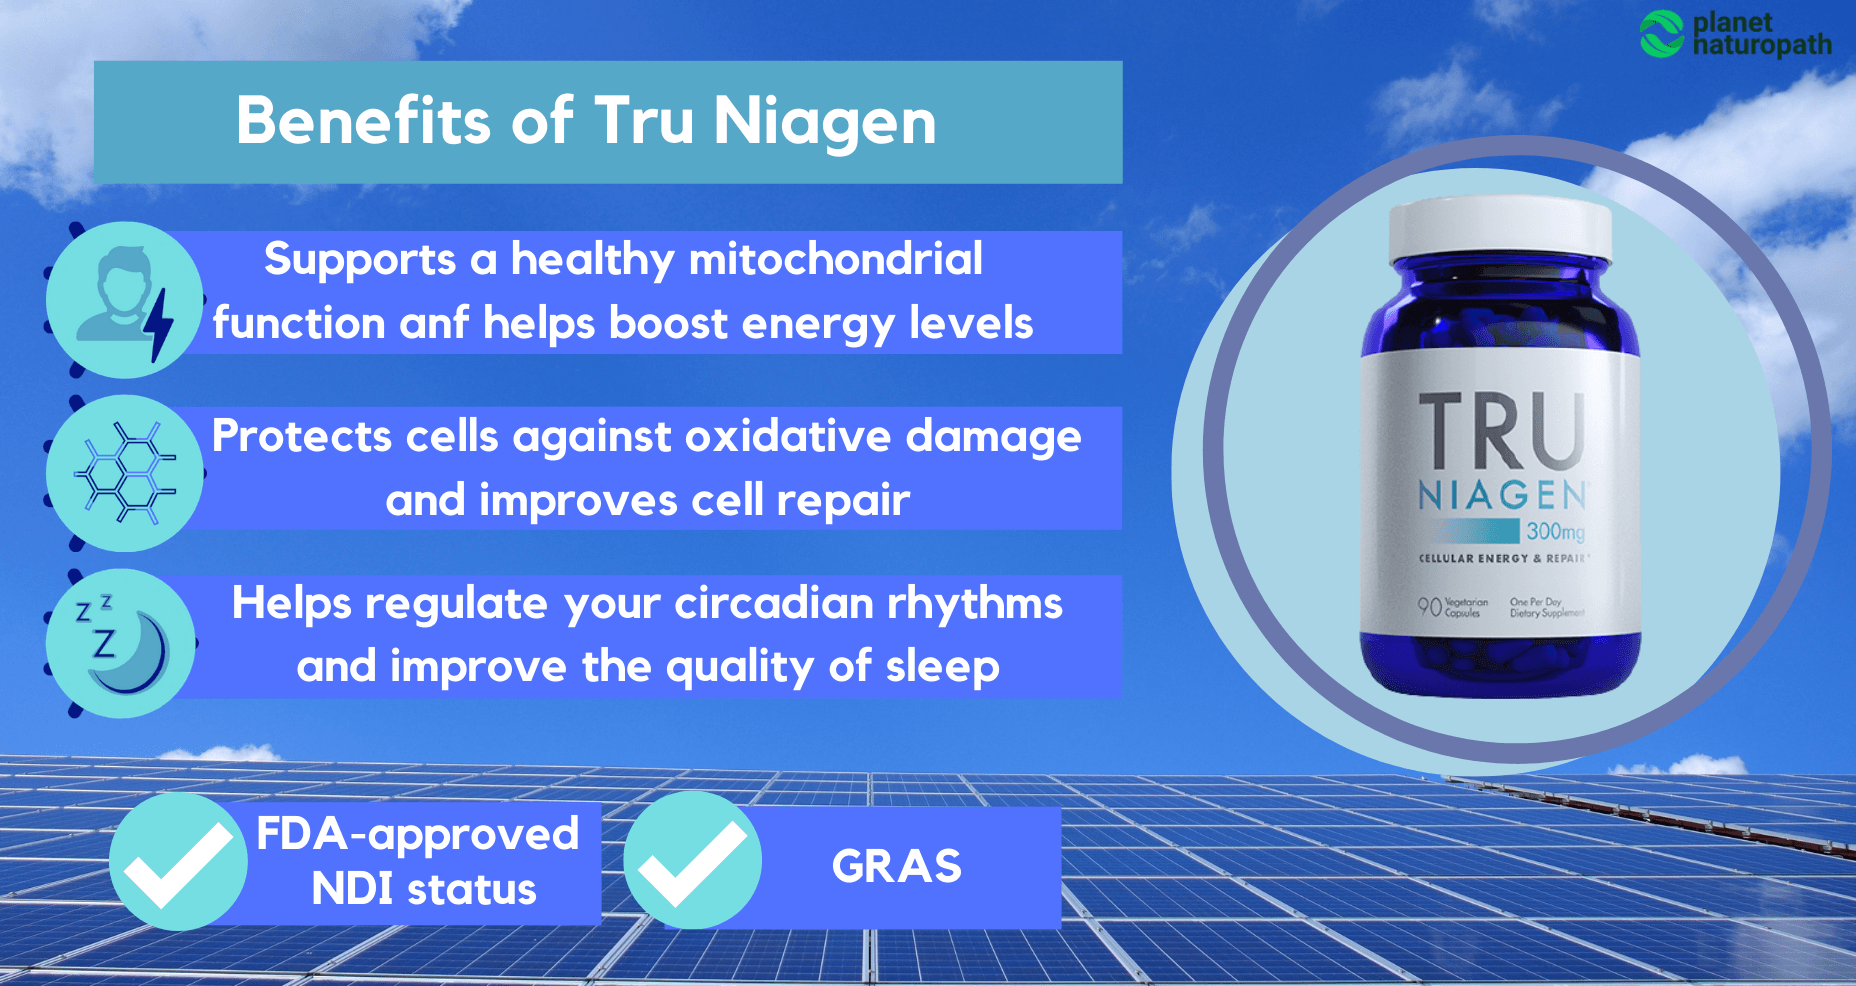 Benefits-of-Tru-Niagen